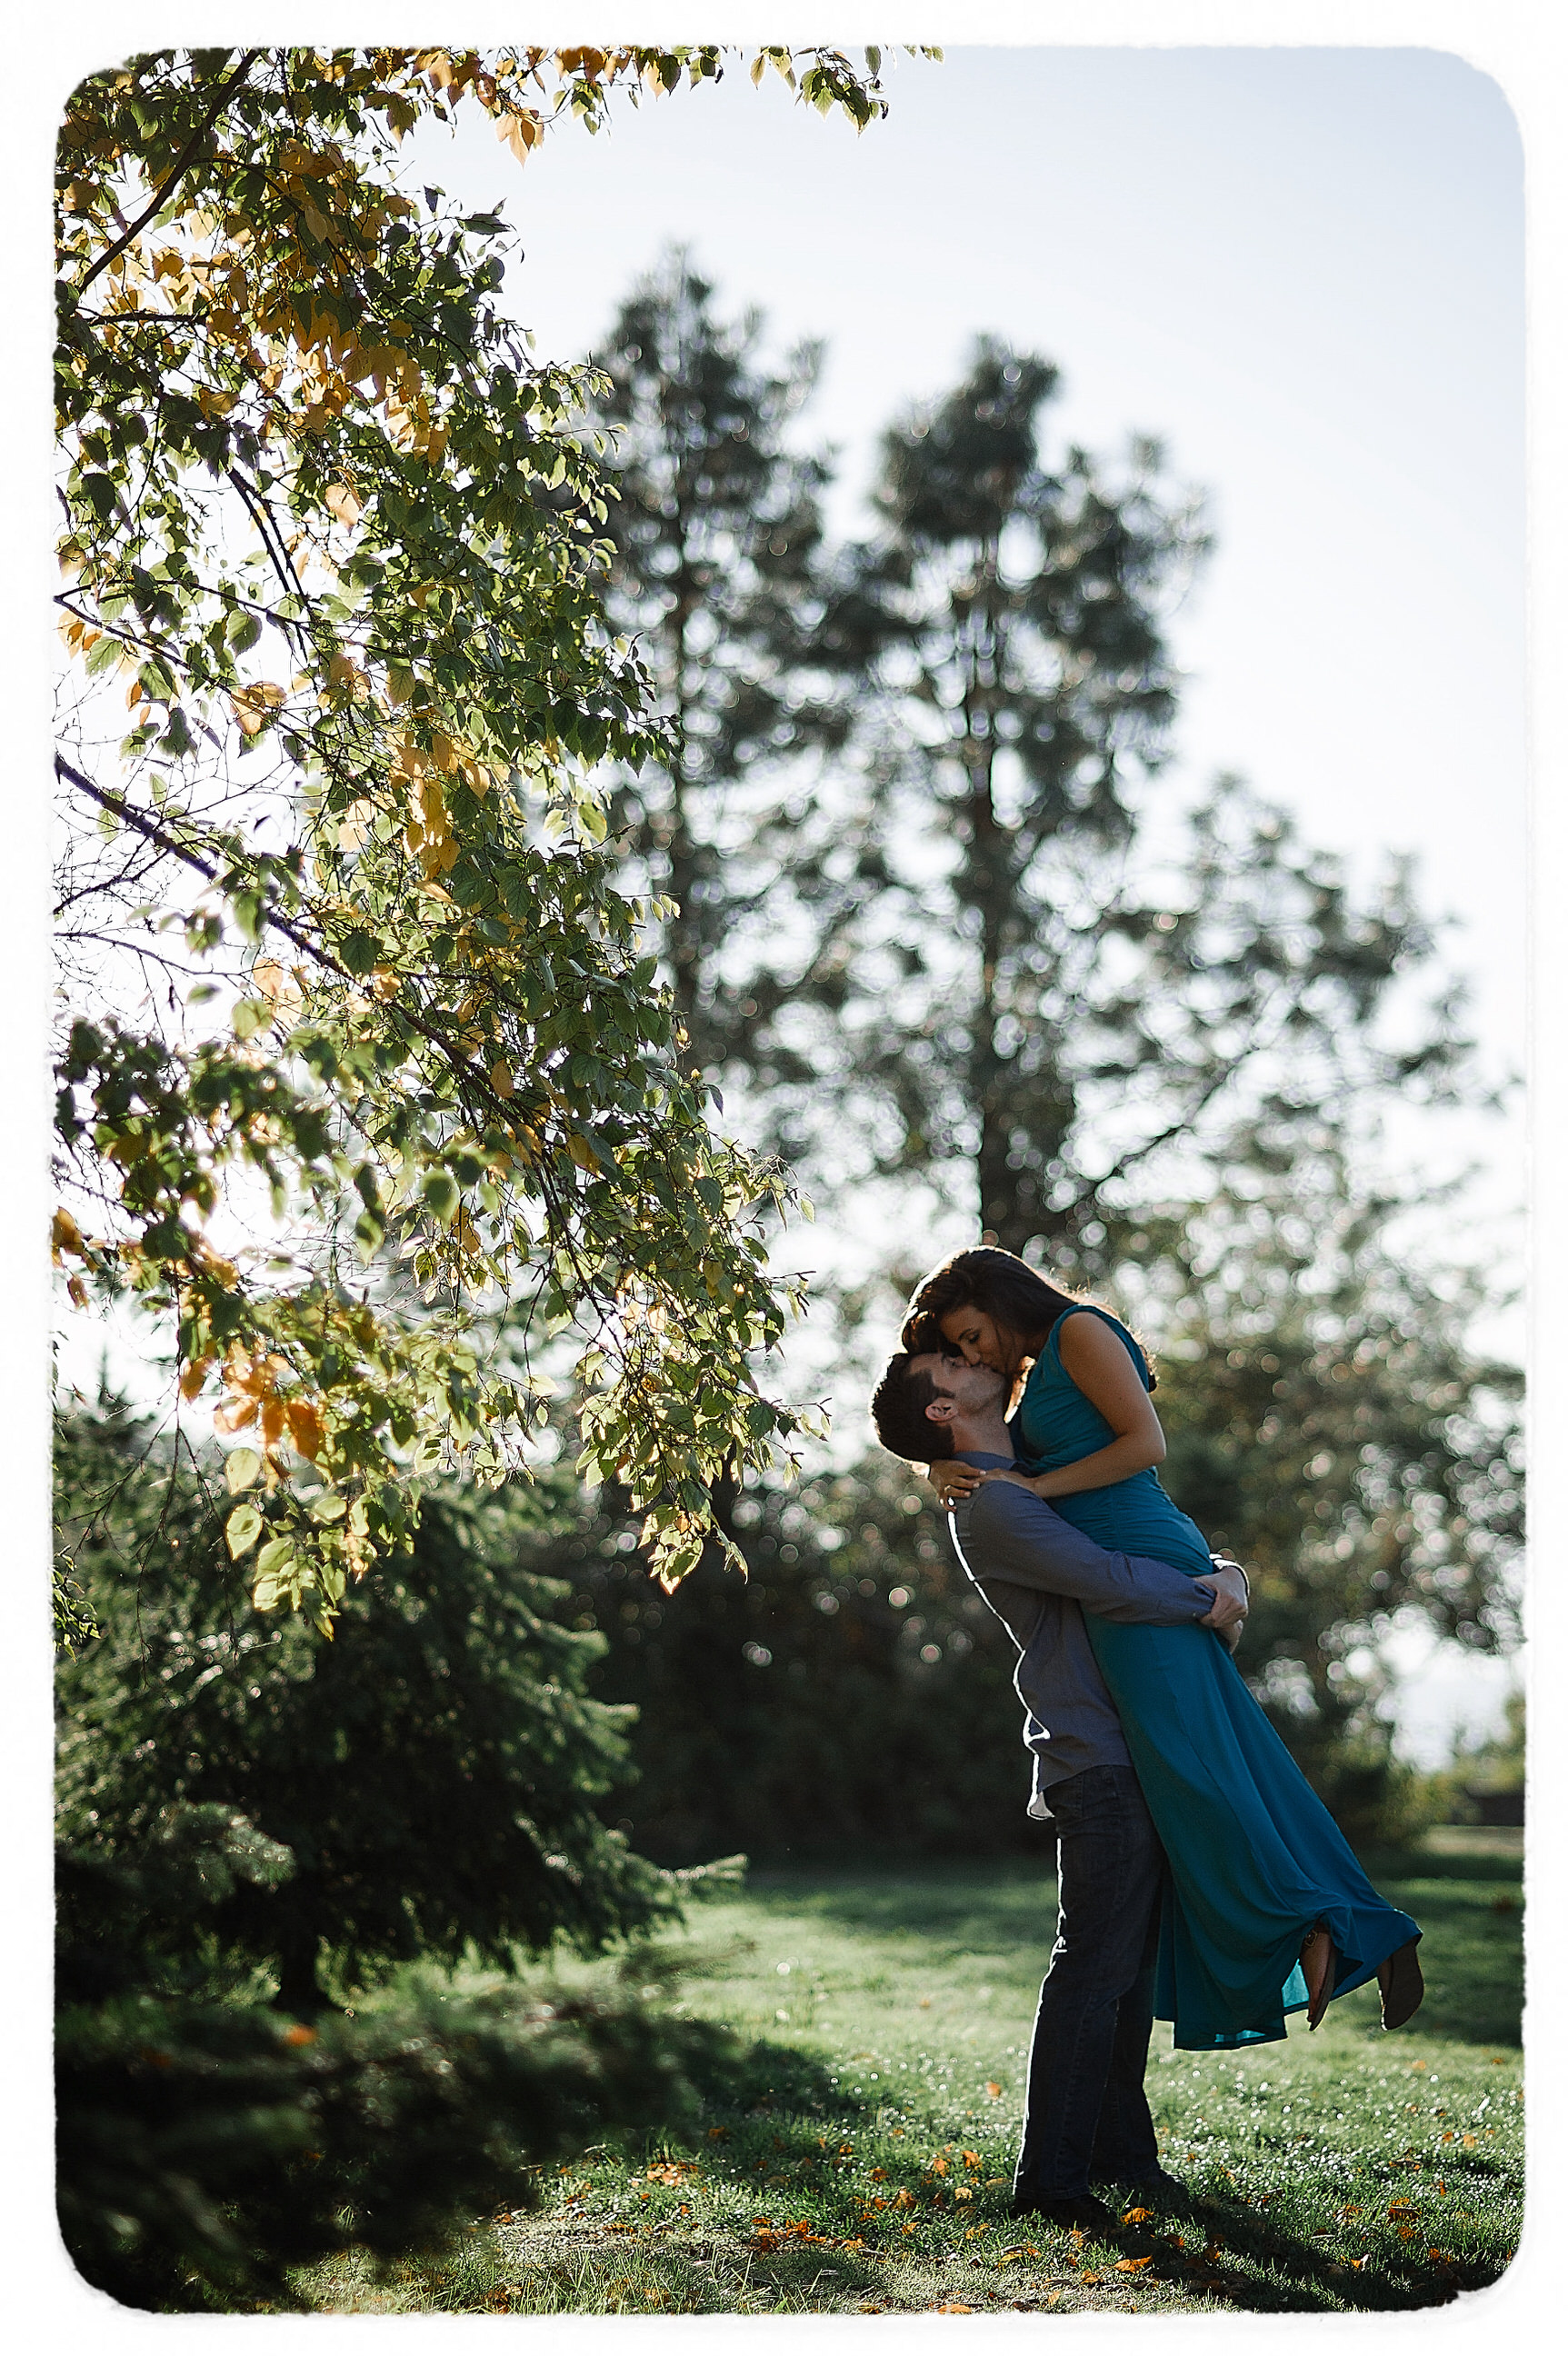 Kelly&Mike-EngagementSession-OriginalCollection-49Film.jpg